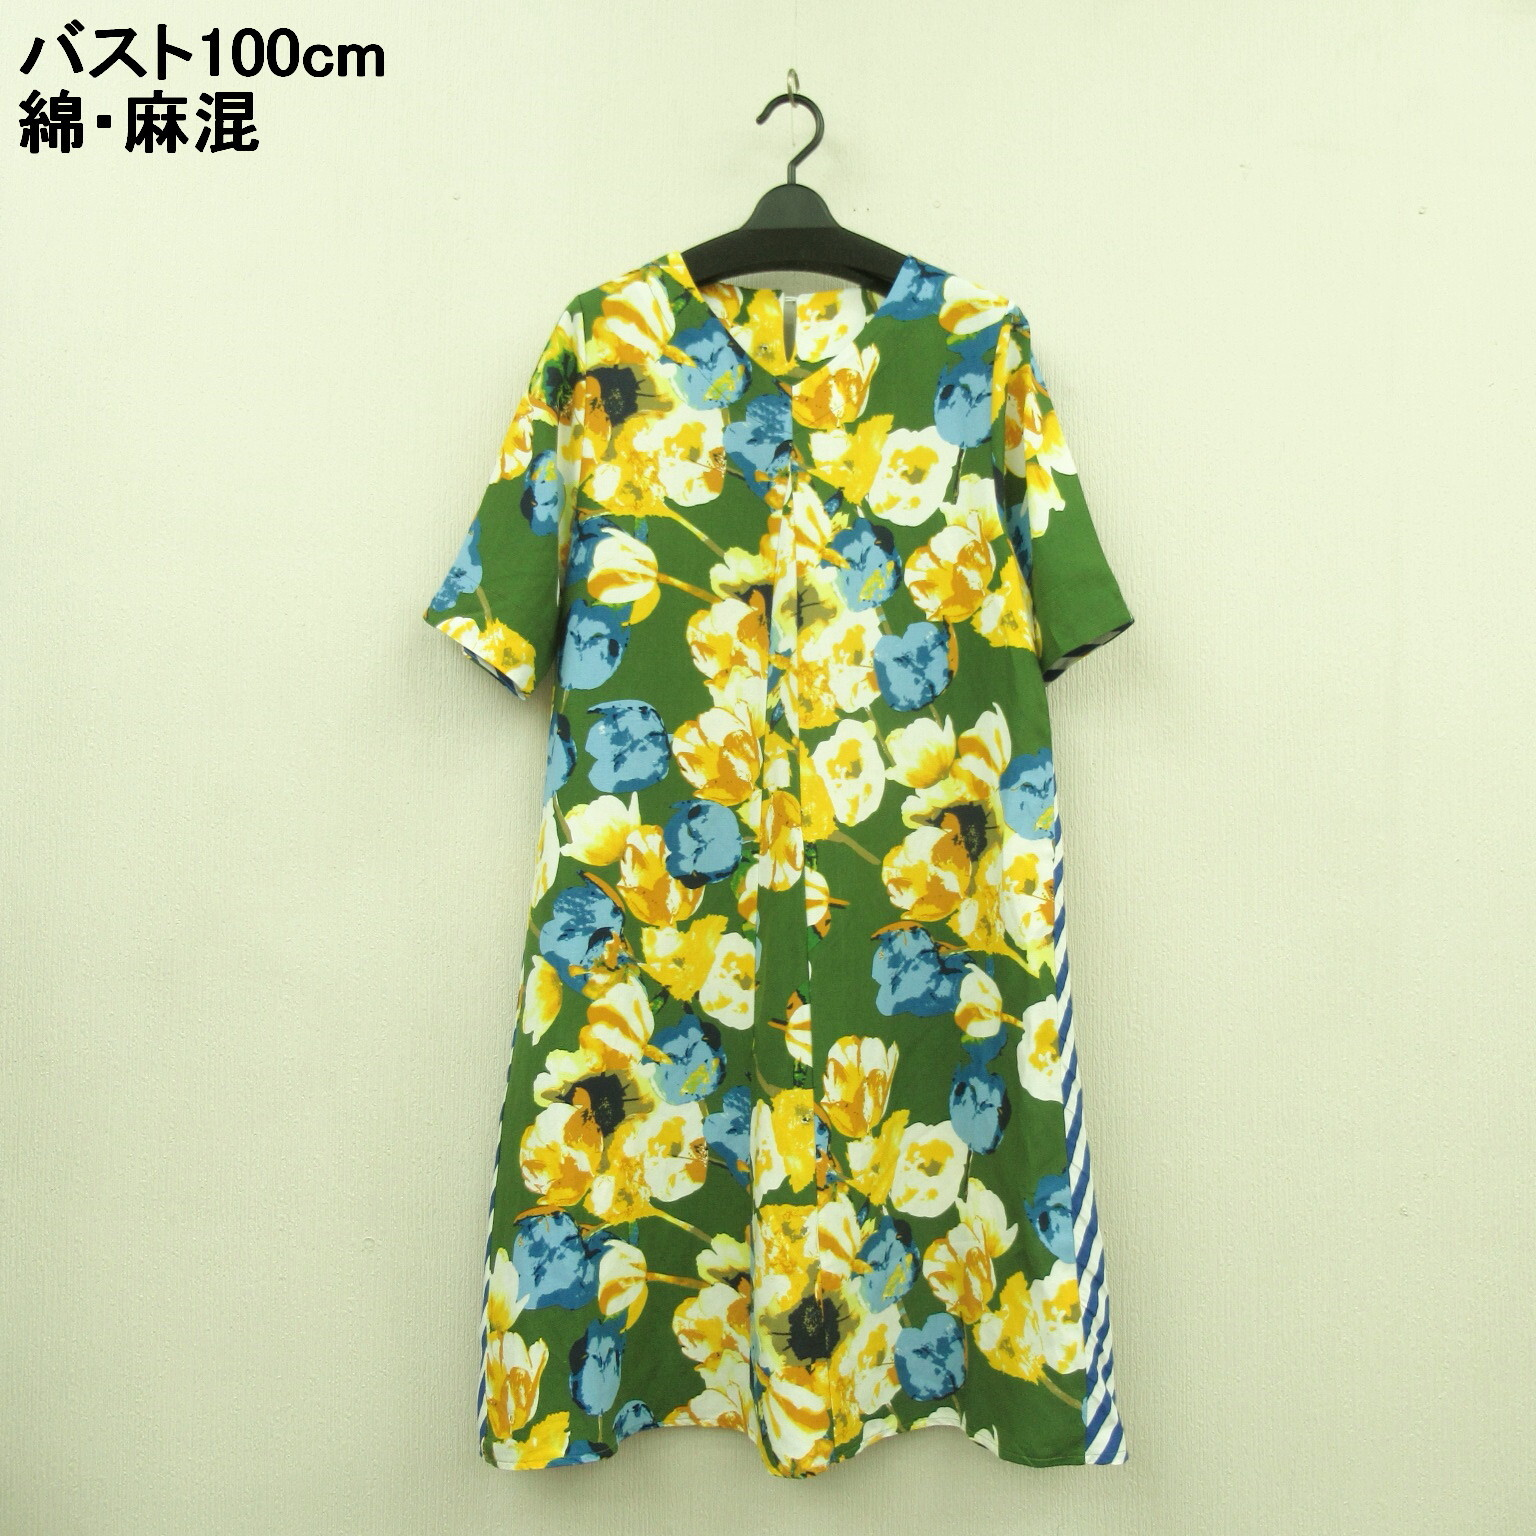 Cotton Hemp Floral Pattern Switching Tunic One Piece Dress Export Japanese Products To The World At Wholesale Prices Super Delivery